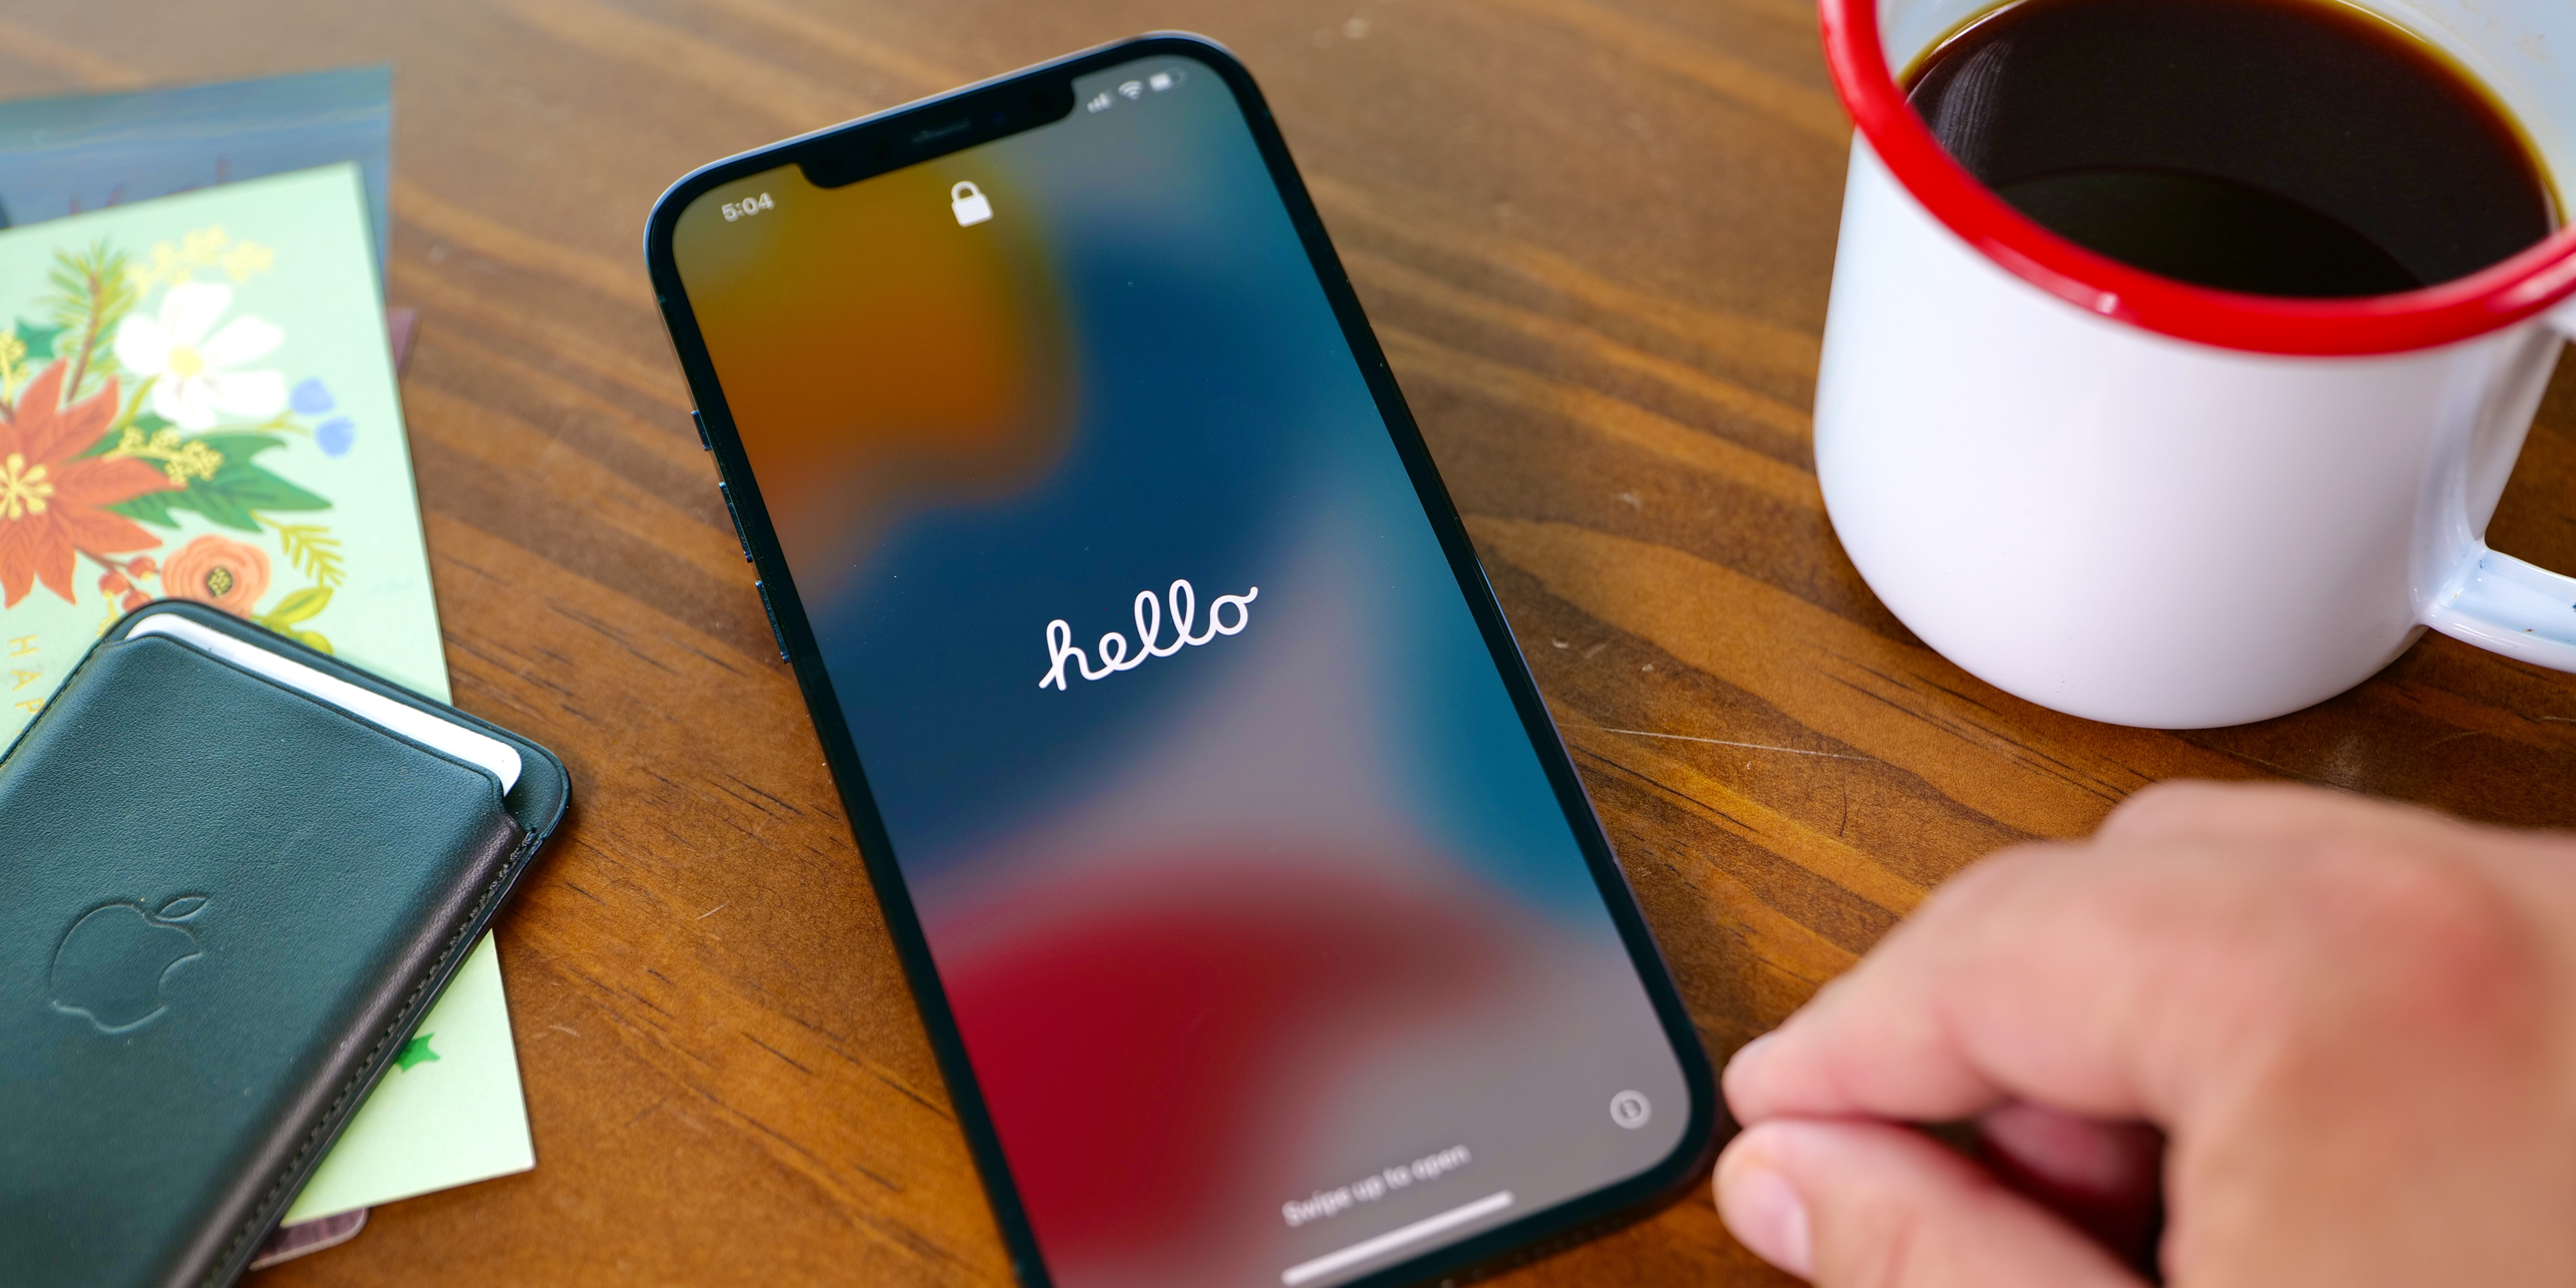 iOS 15 review: New features like focus mode and live text are game-changers - CNET